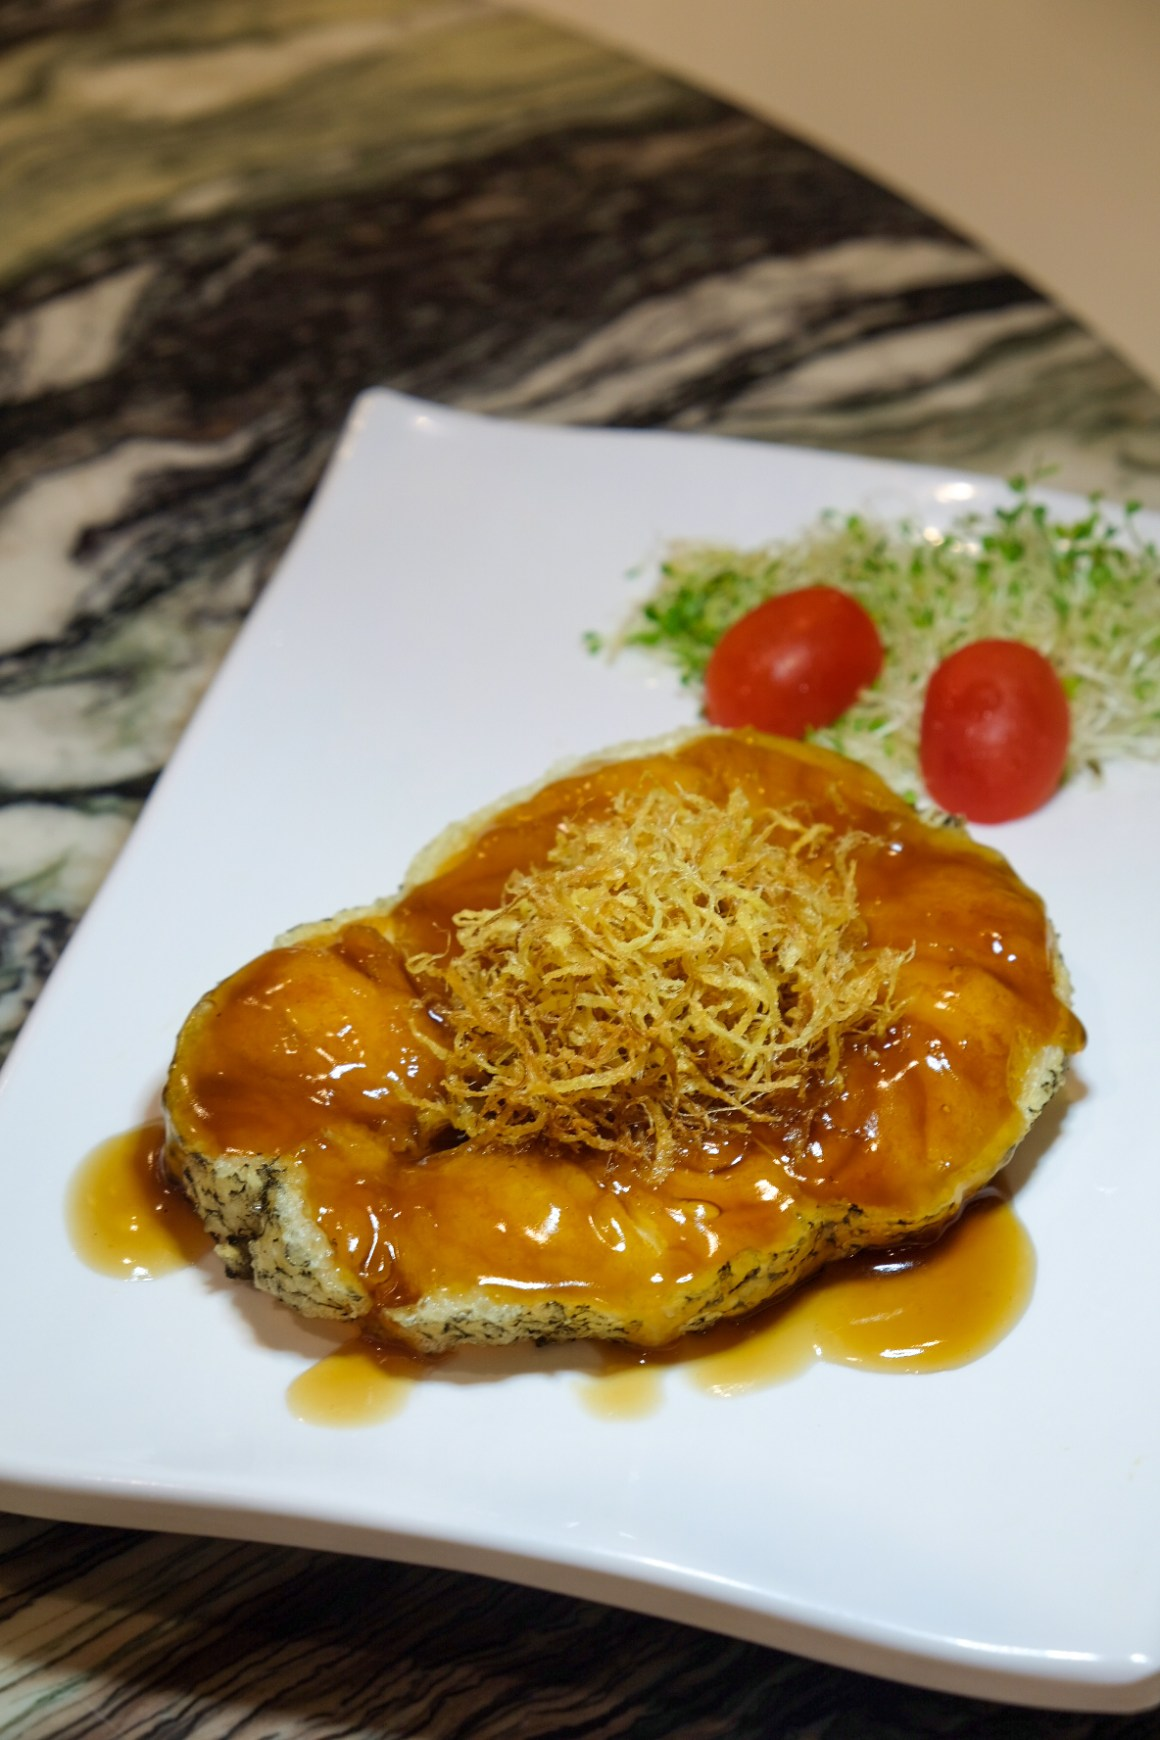 Pan-fried Cod with Specialty Sauce (Seasonal Price)